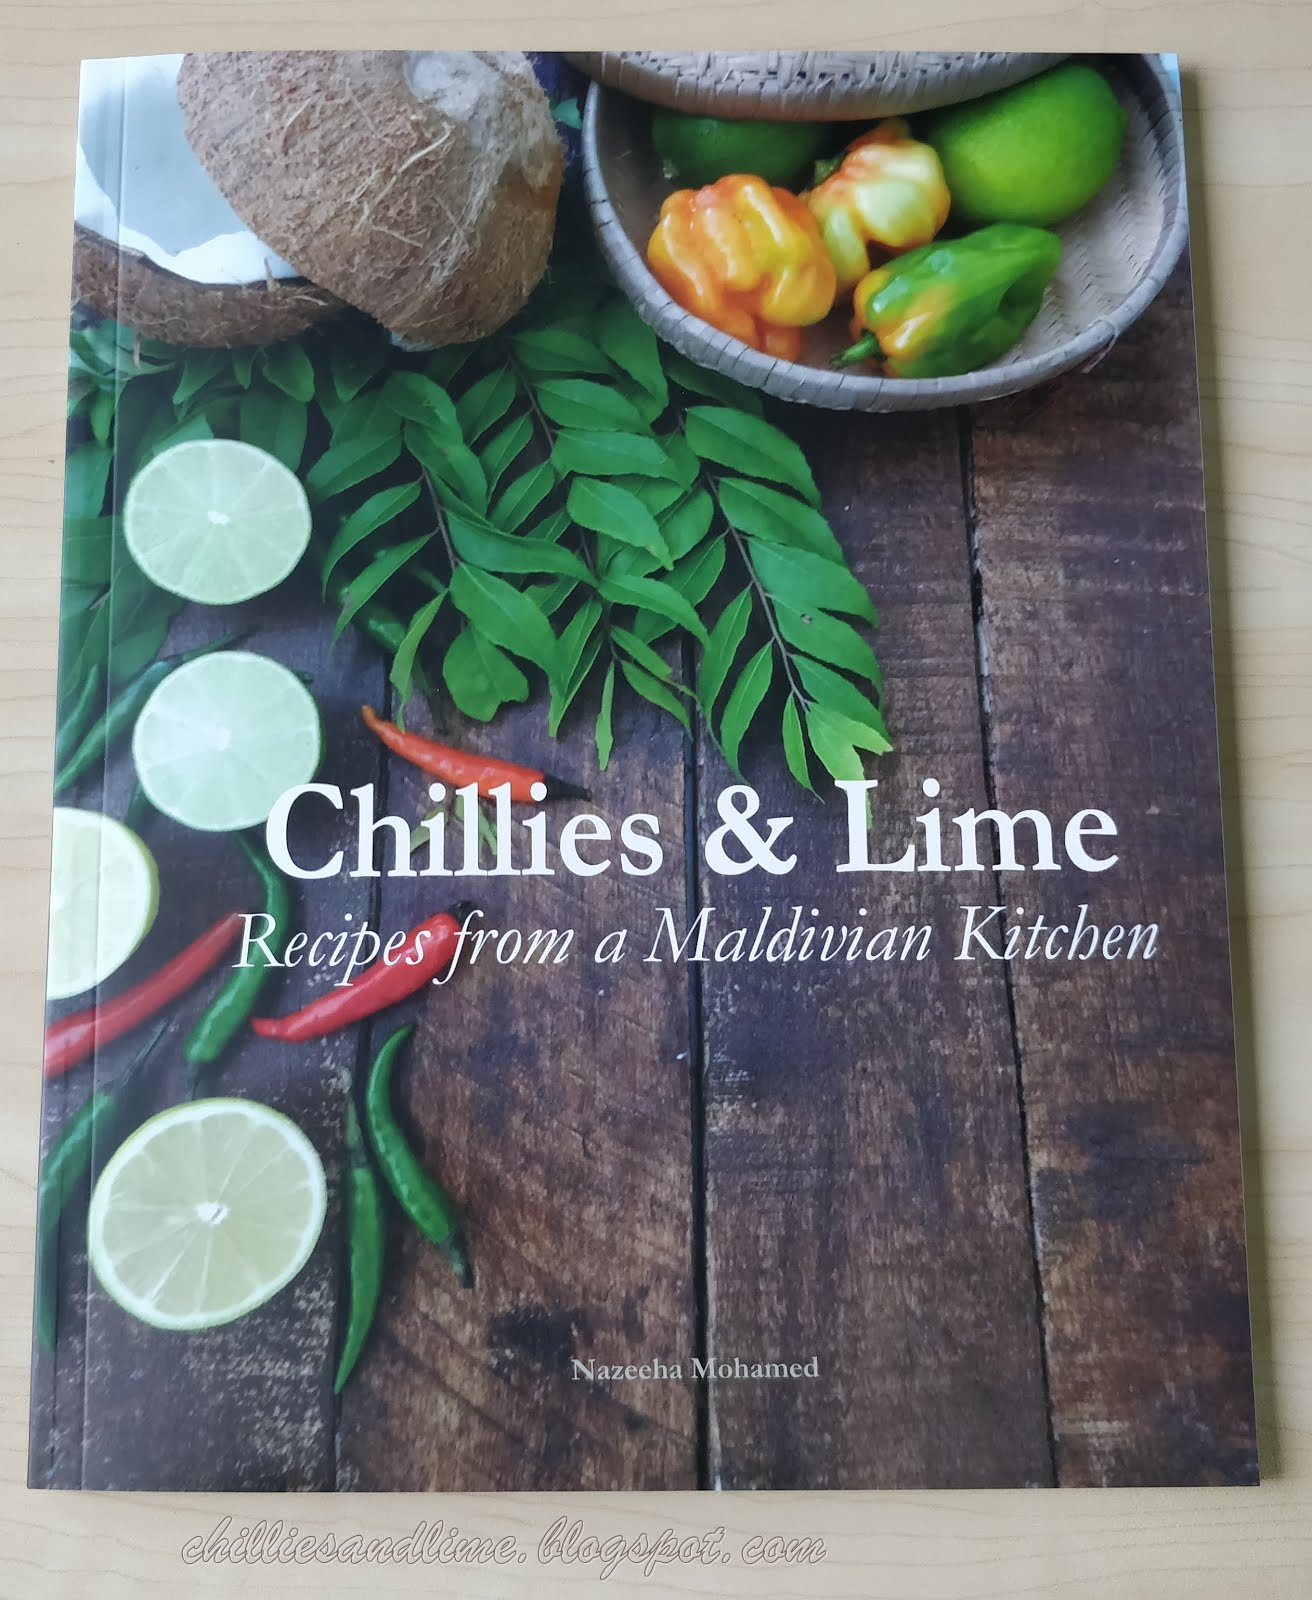 Chillies and lime: Recipes from a Maldivian kitchen